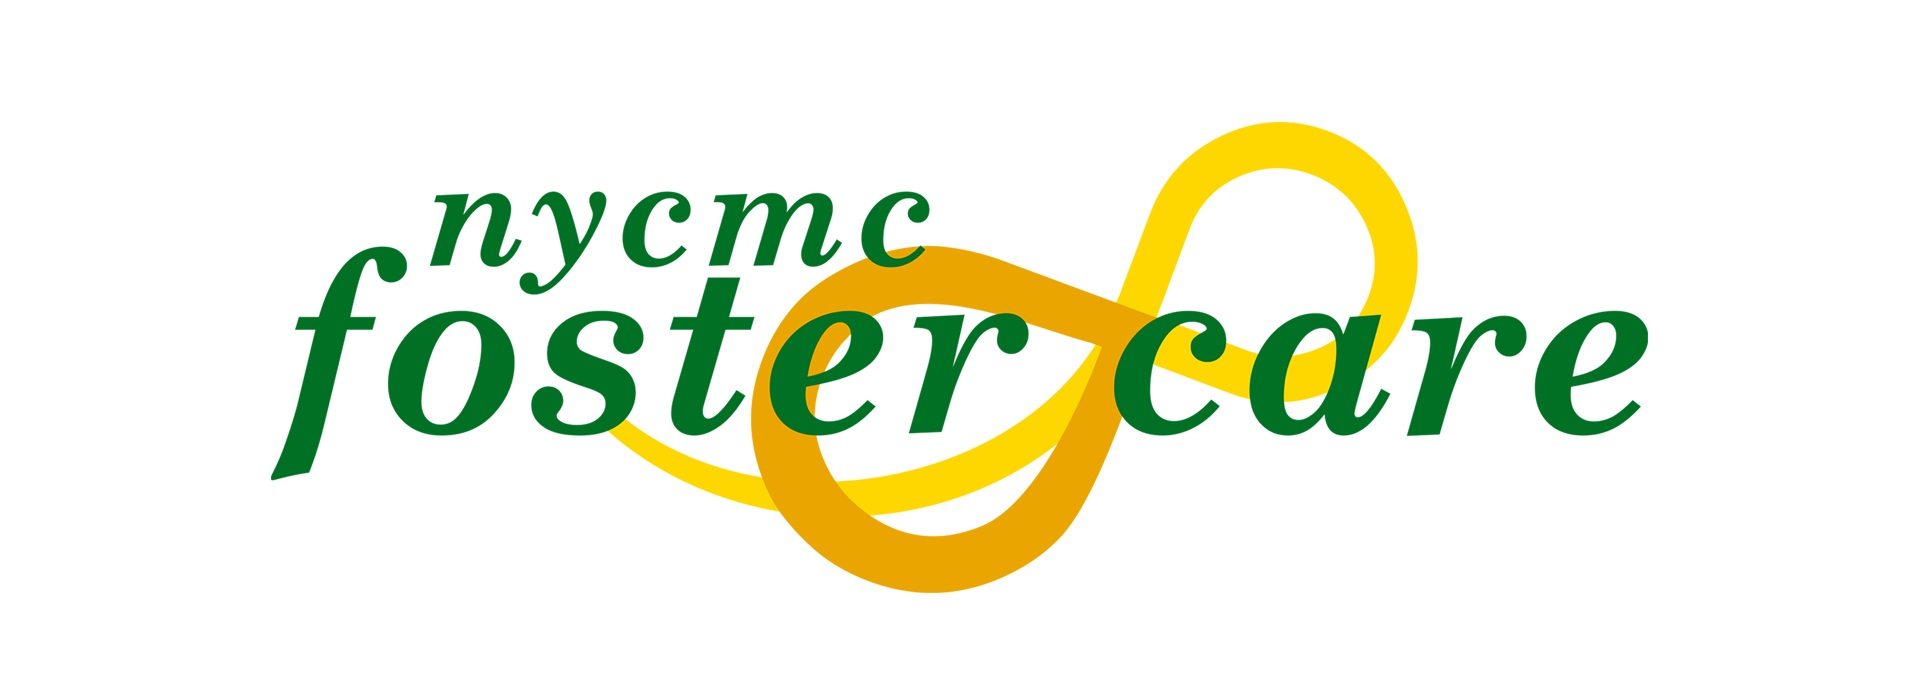 NYCMC_FOSTER_CARE_HD_logo.jpg